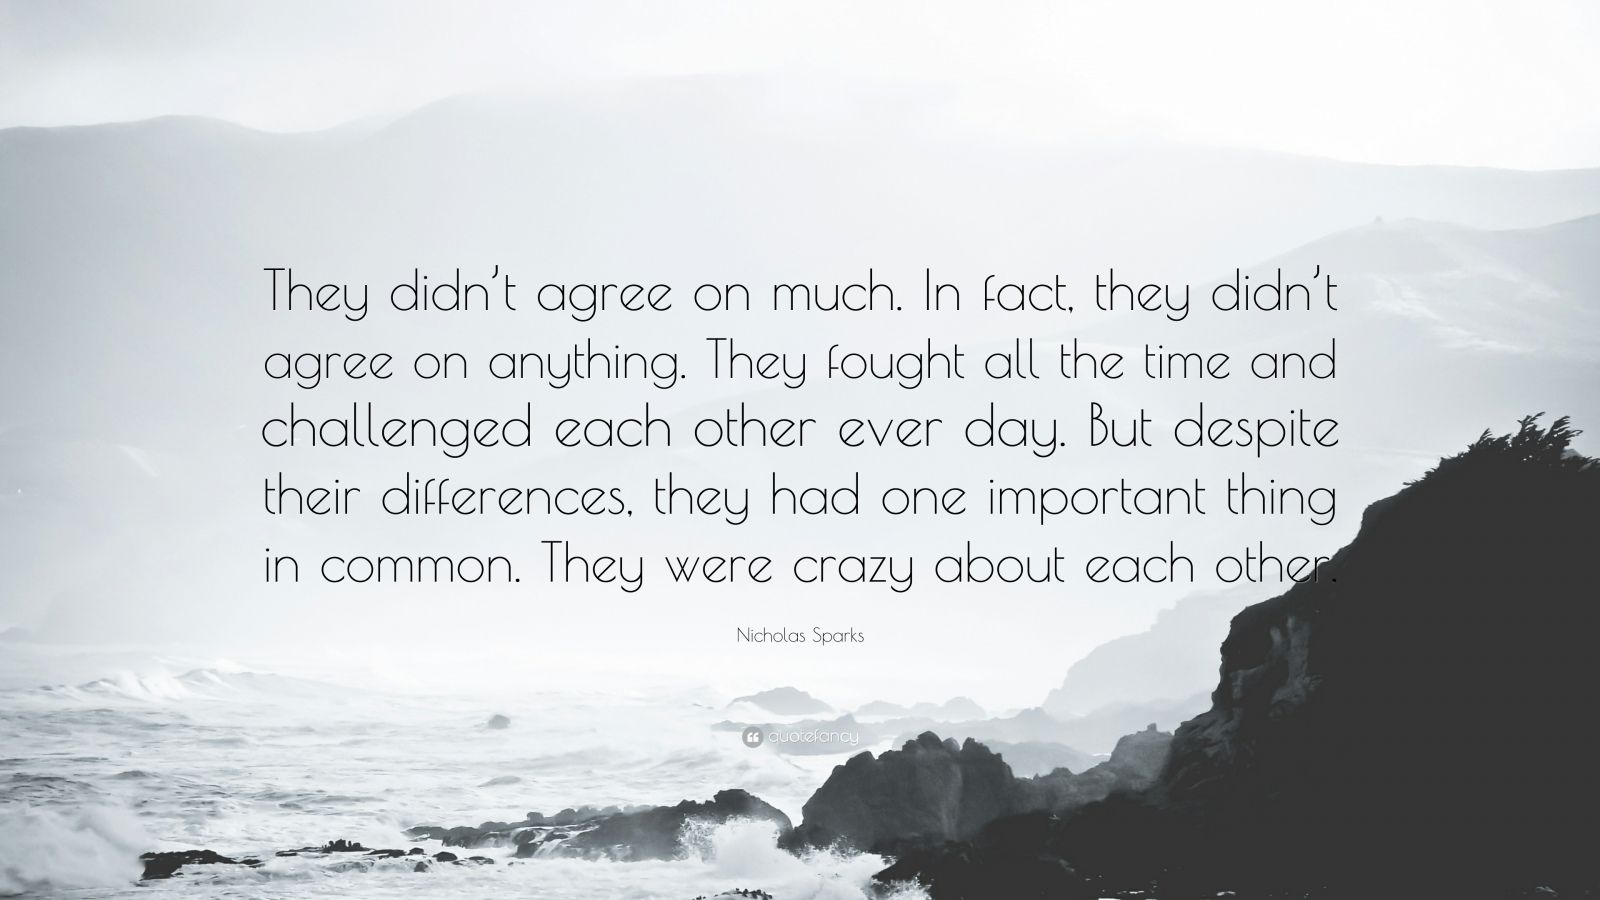 """Nicholas Sparks Quote: """"They didn't agree on much. In fact, they didn't agree on anything. They fought all the time and challenged each other ever day. But despite their differences, they had one important thing in common. They were crazy about each other."""""""